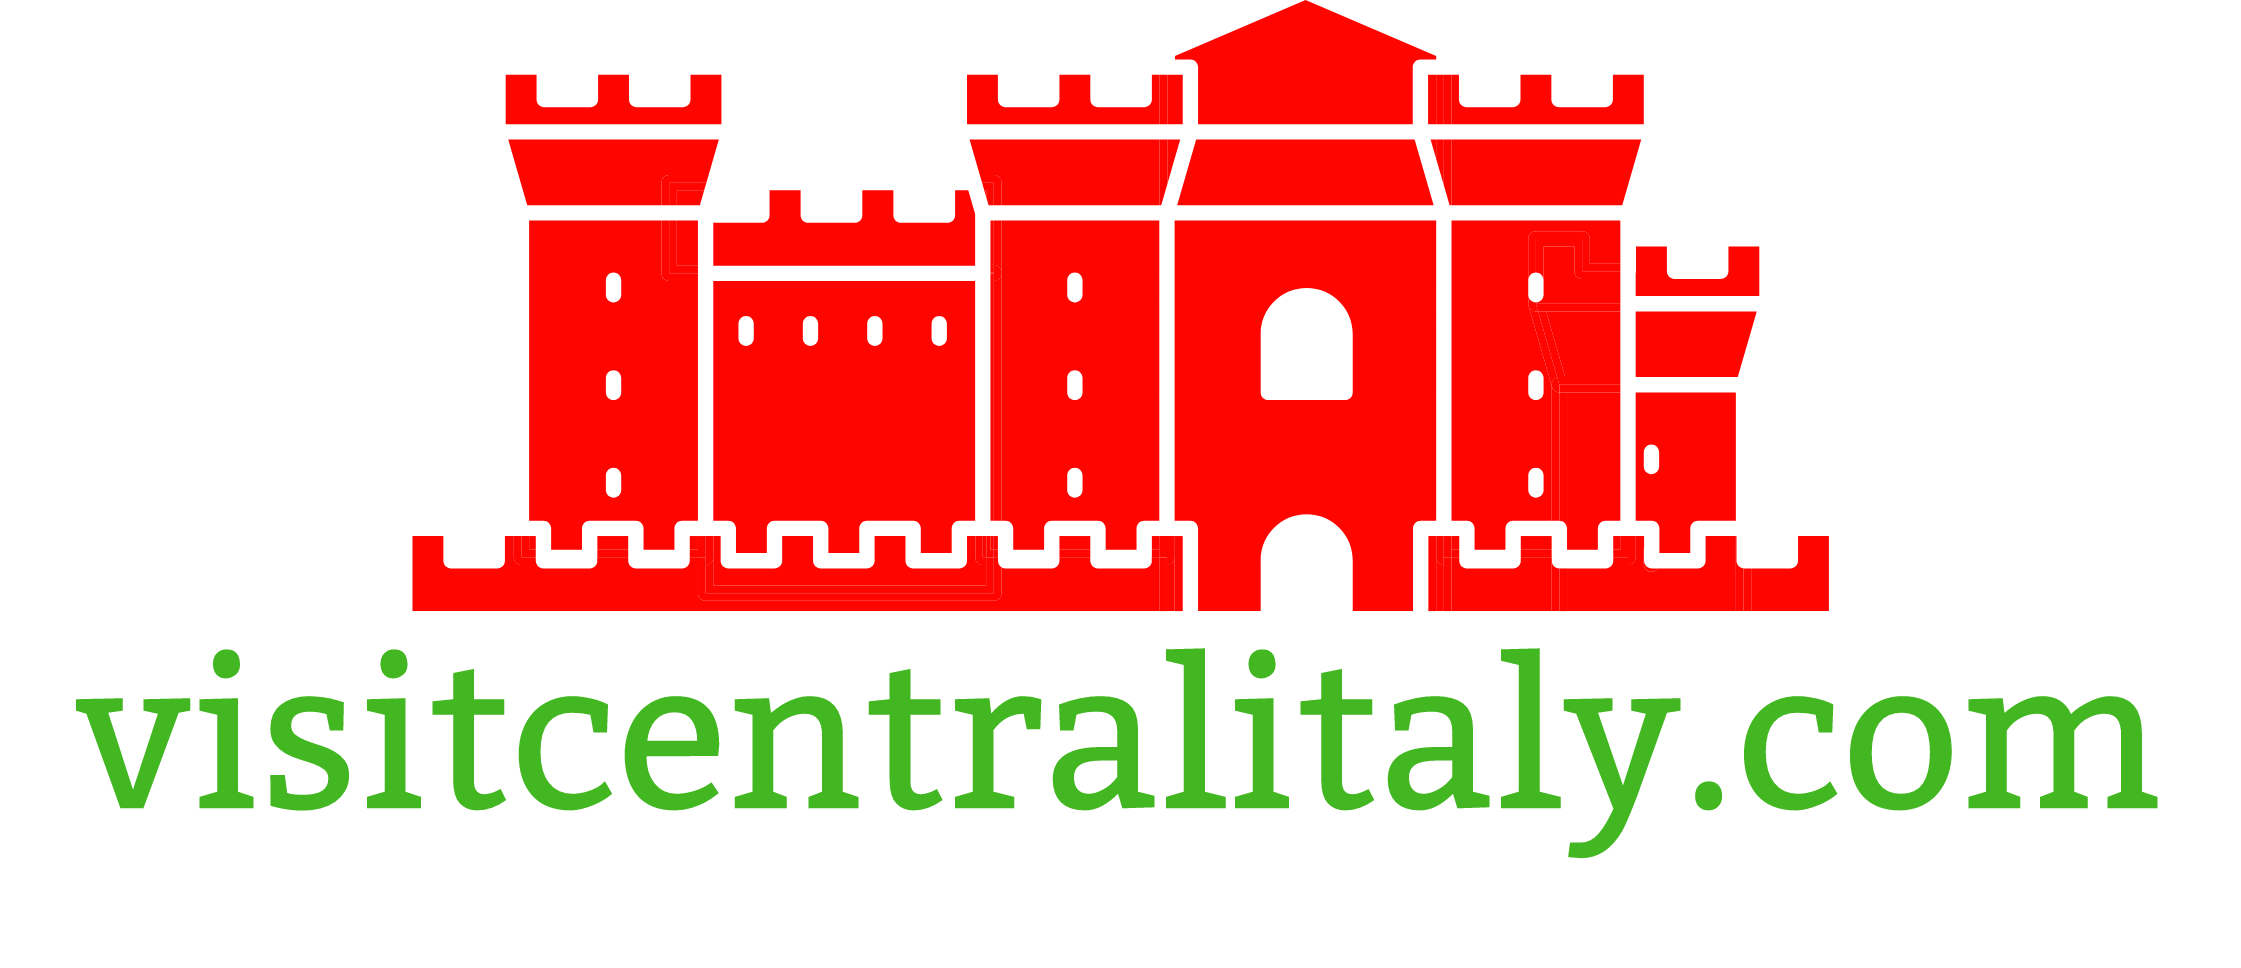 VisitCentralItaly.com Provides Opportunity To Win A House In Central Italy